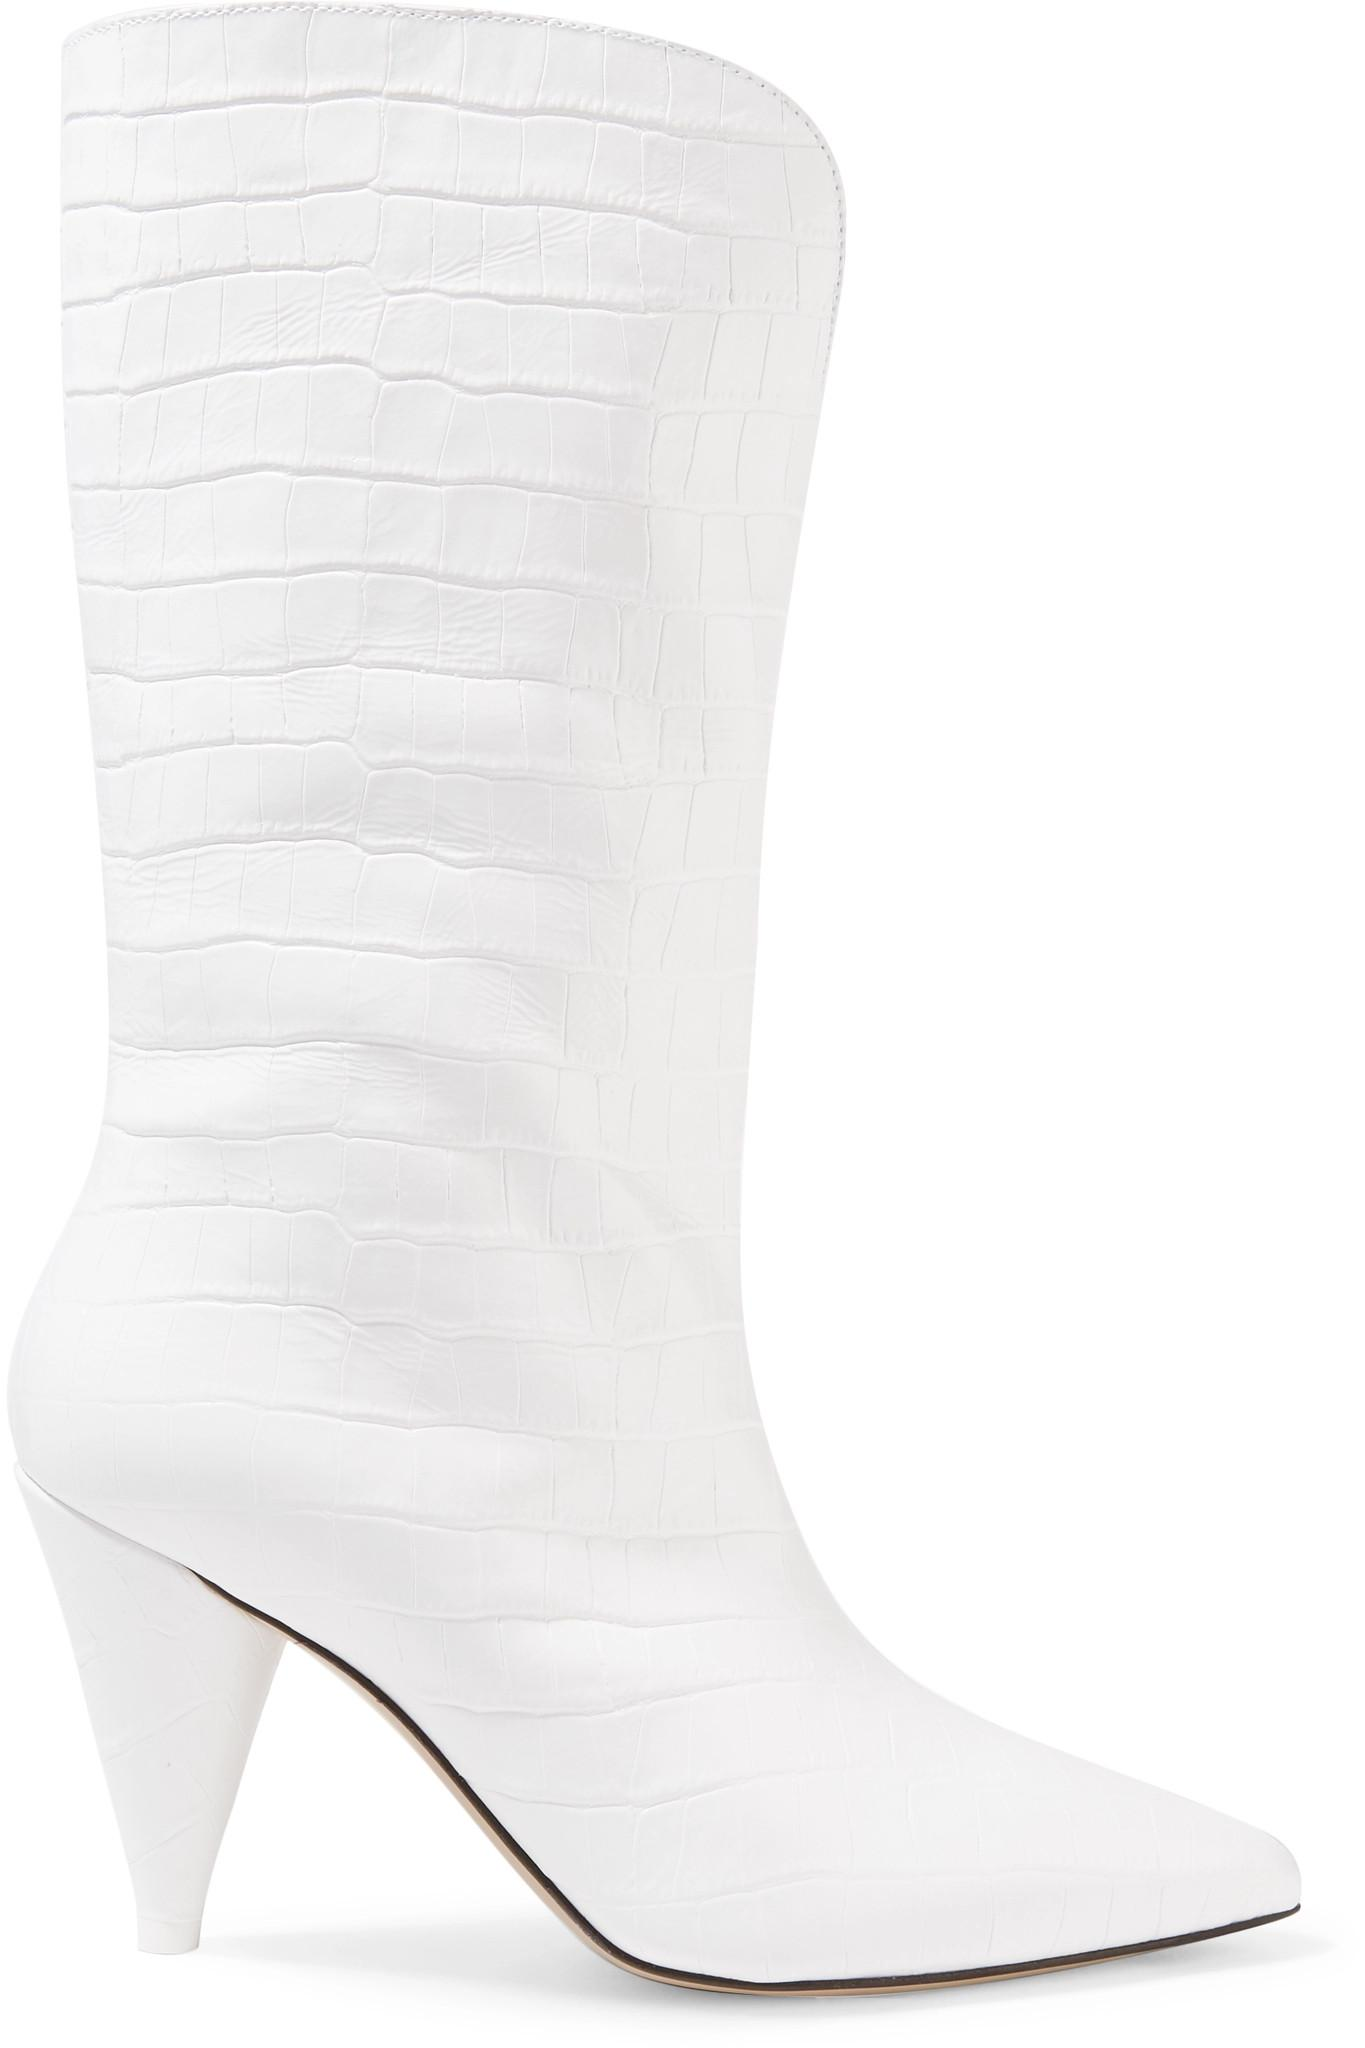 ee2af579759 Attico Betta Croc-effect Leather Knee Boots in White - Save 40% - Lyst